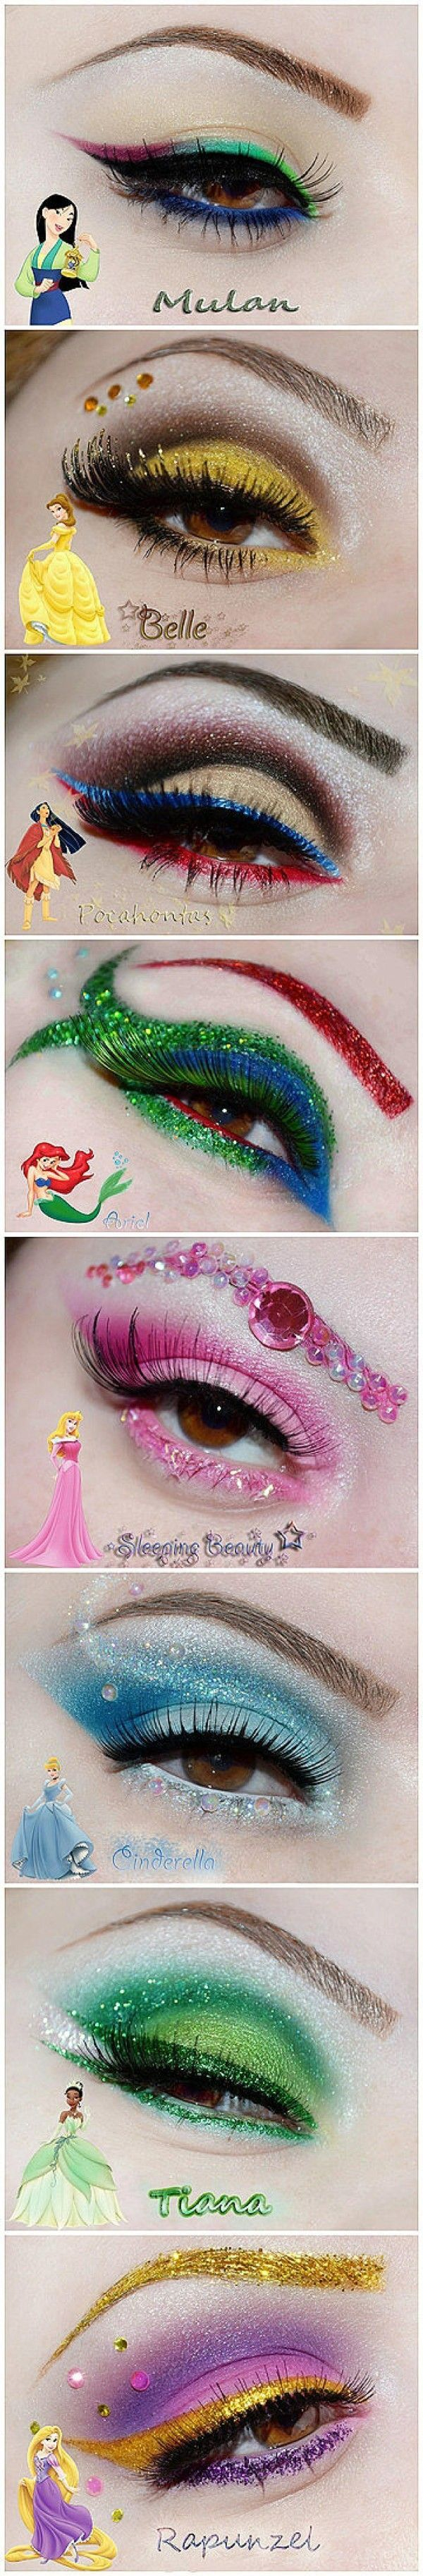 Disney inspired eye makeup